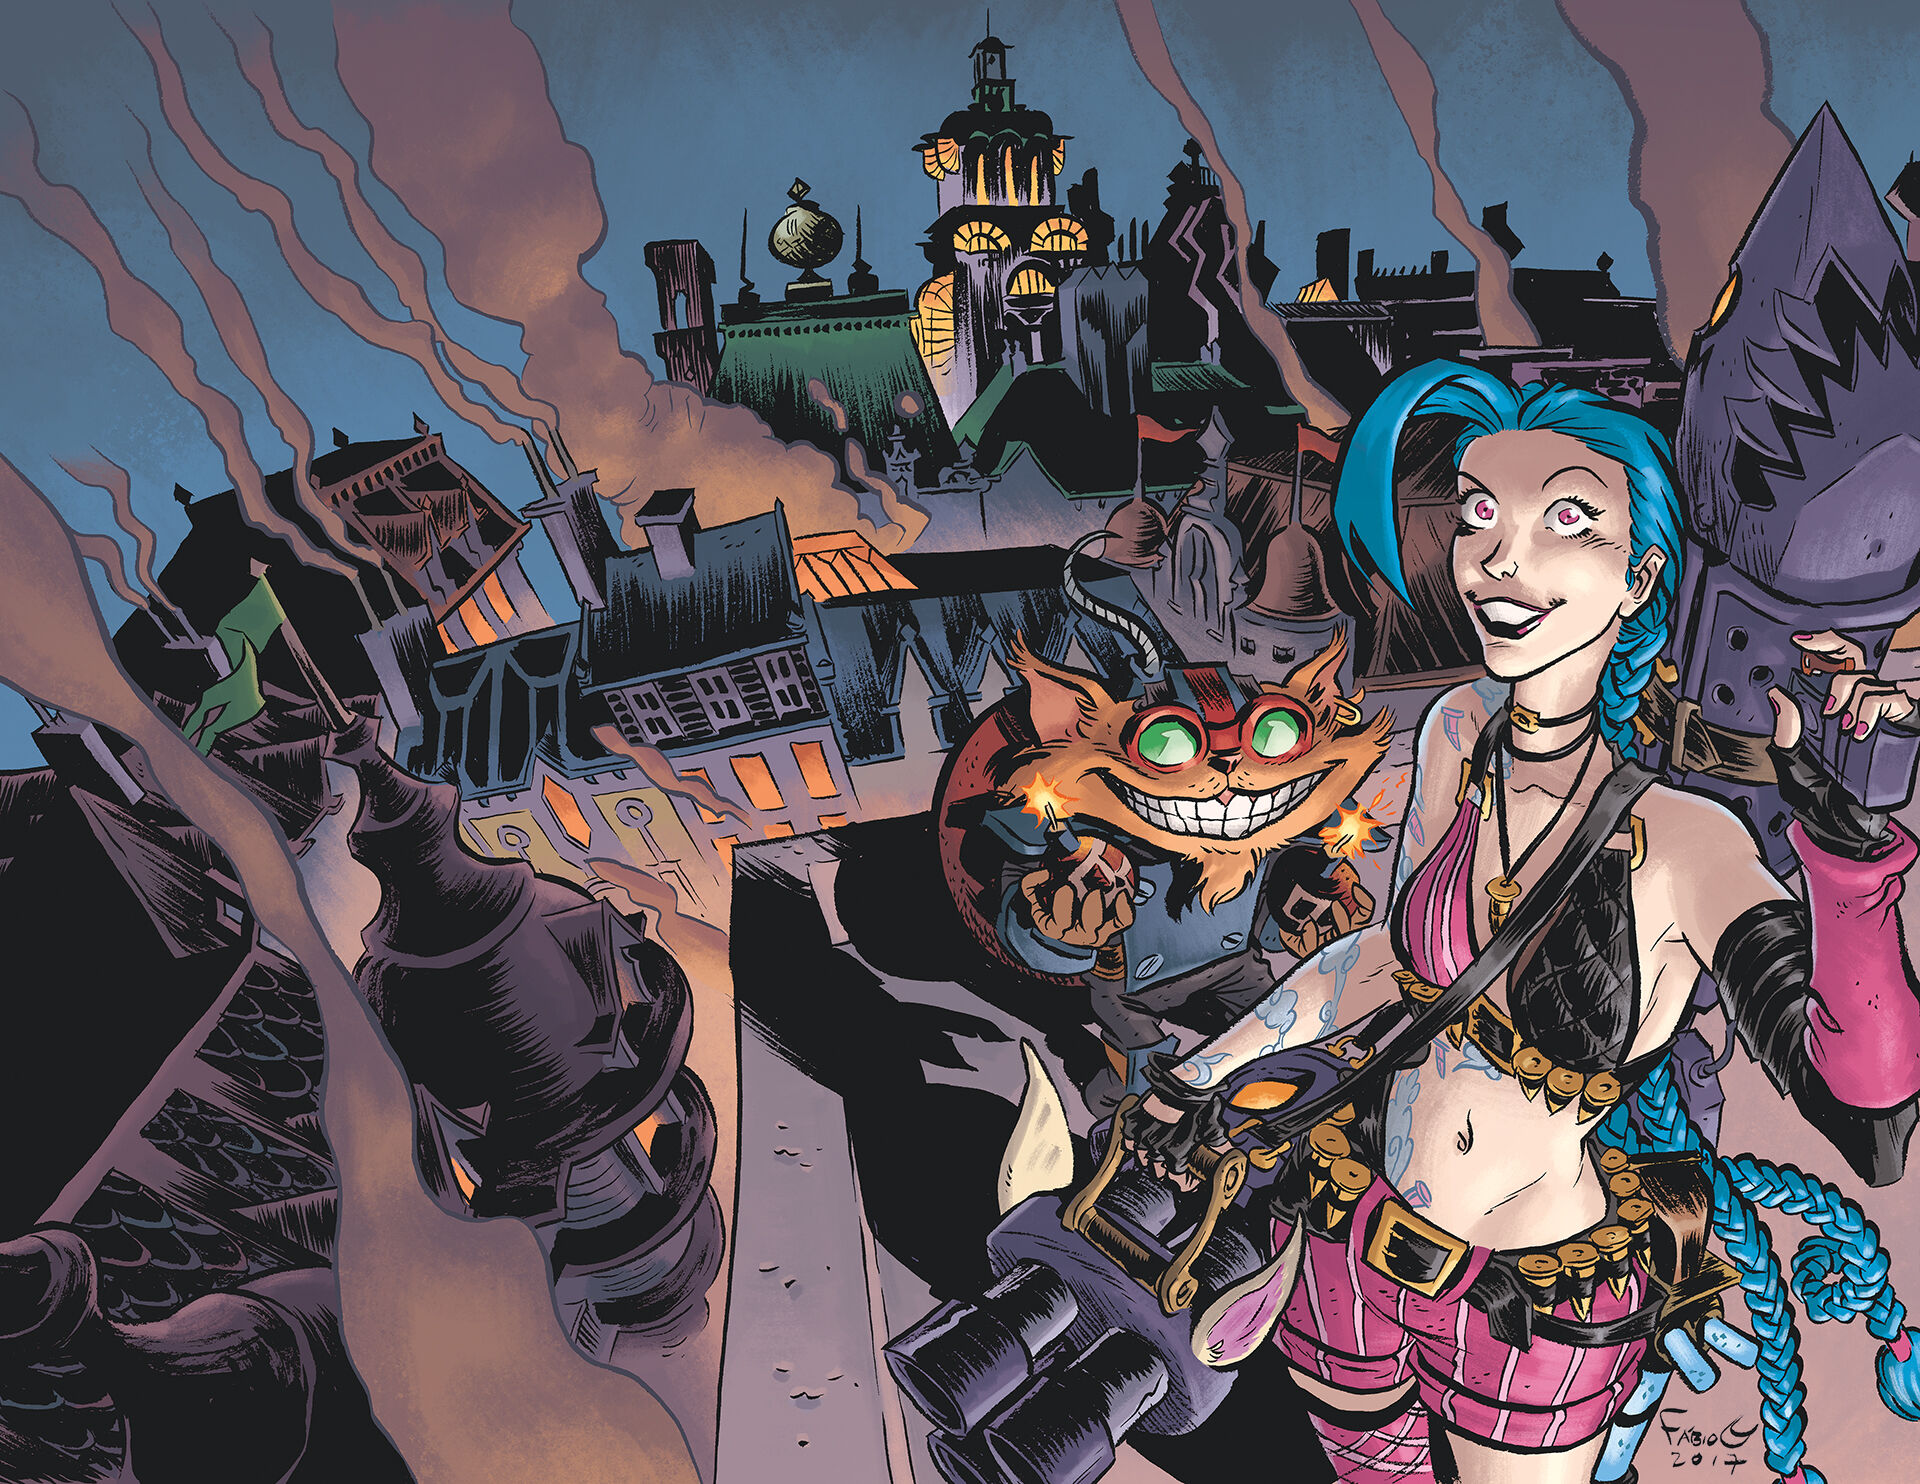 Ziggs and Jinx Paint the Town cover 02.jpg